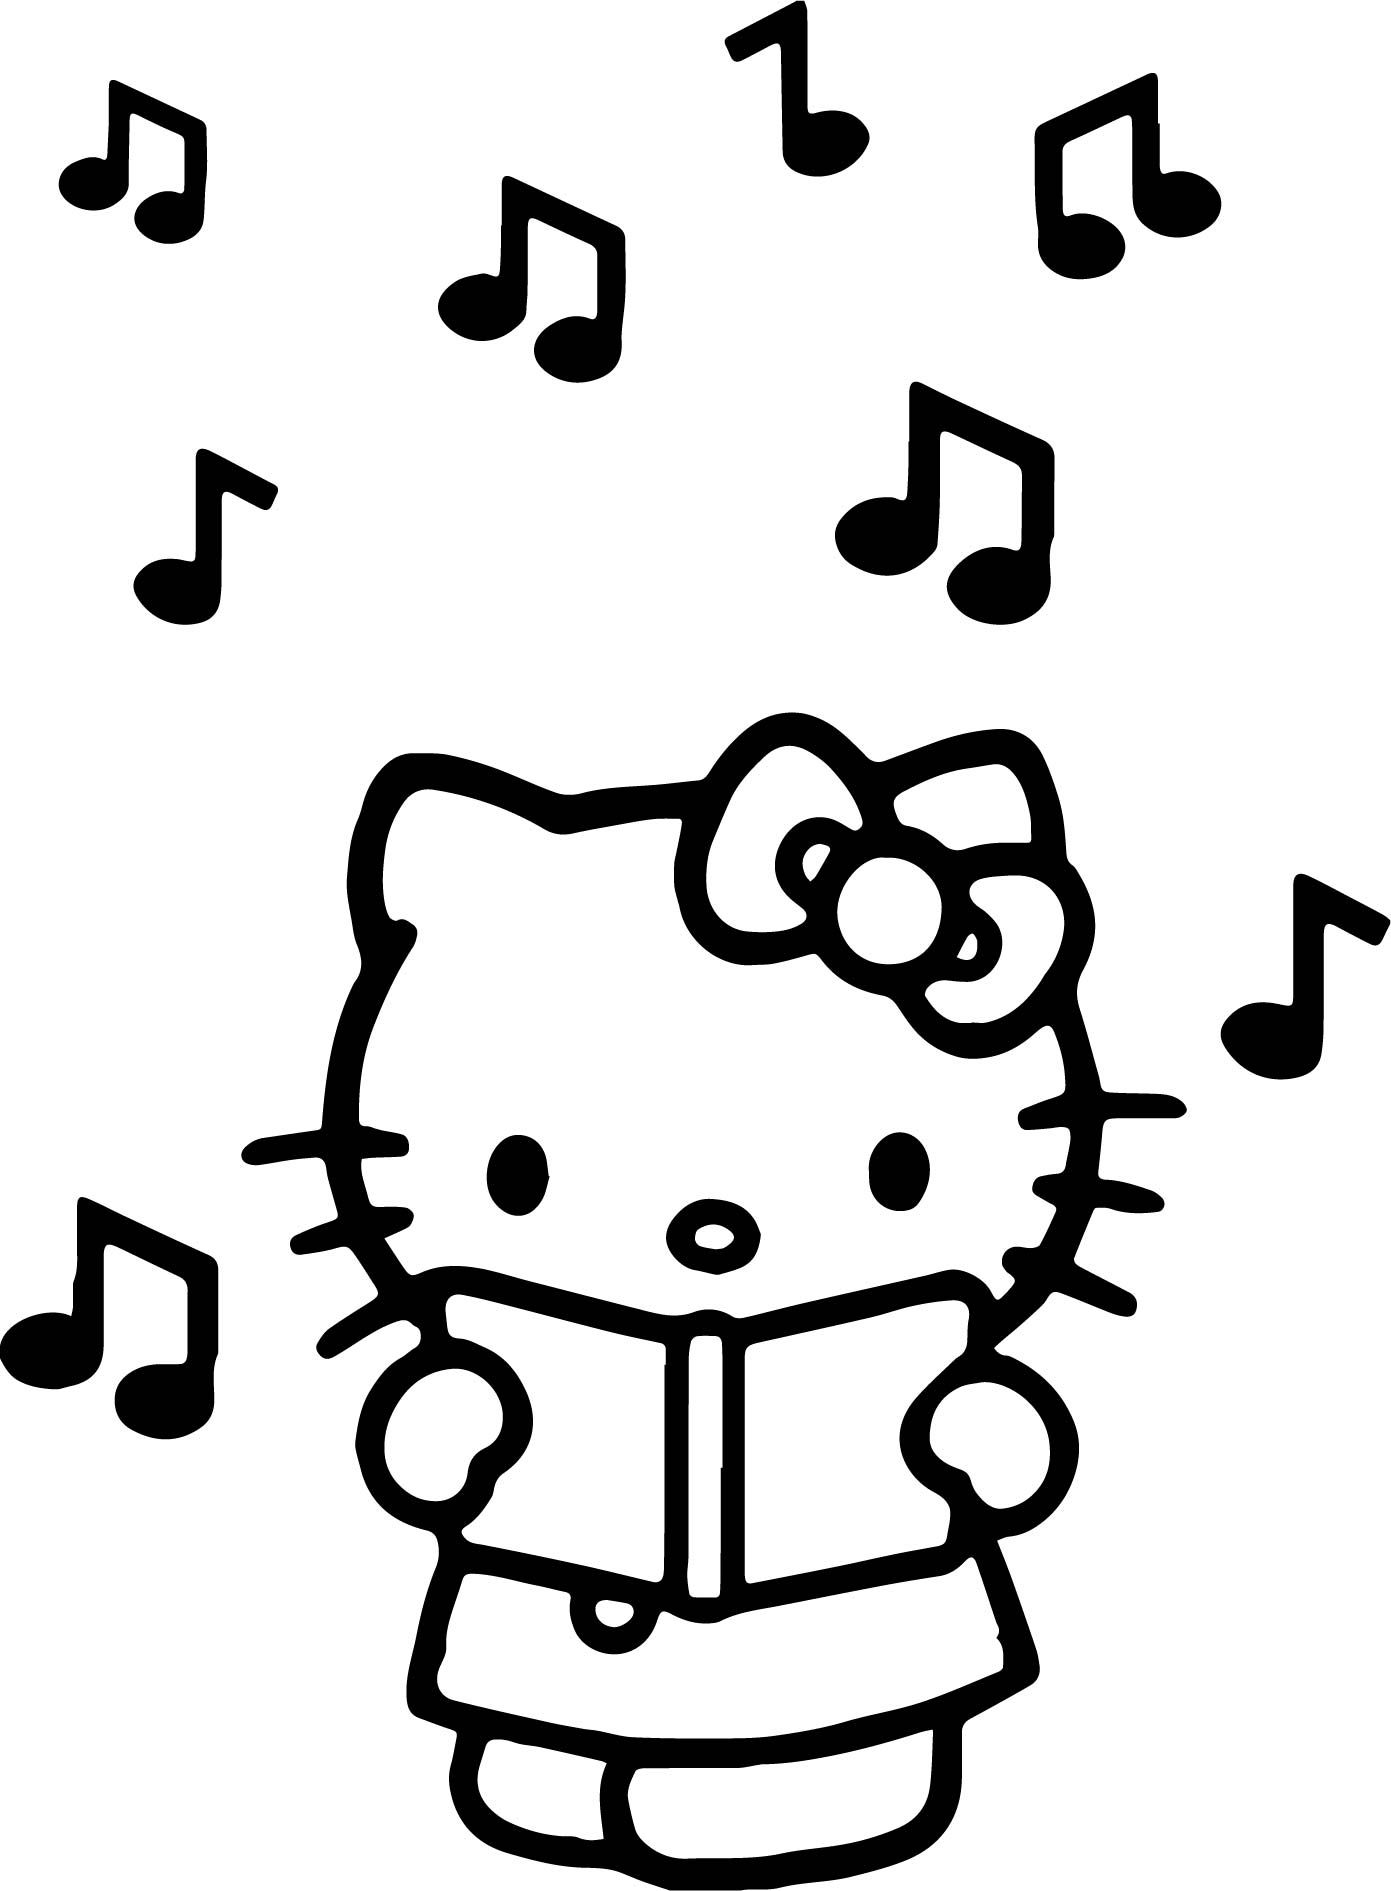 Cool hello kitty listen music coloring page